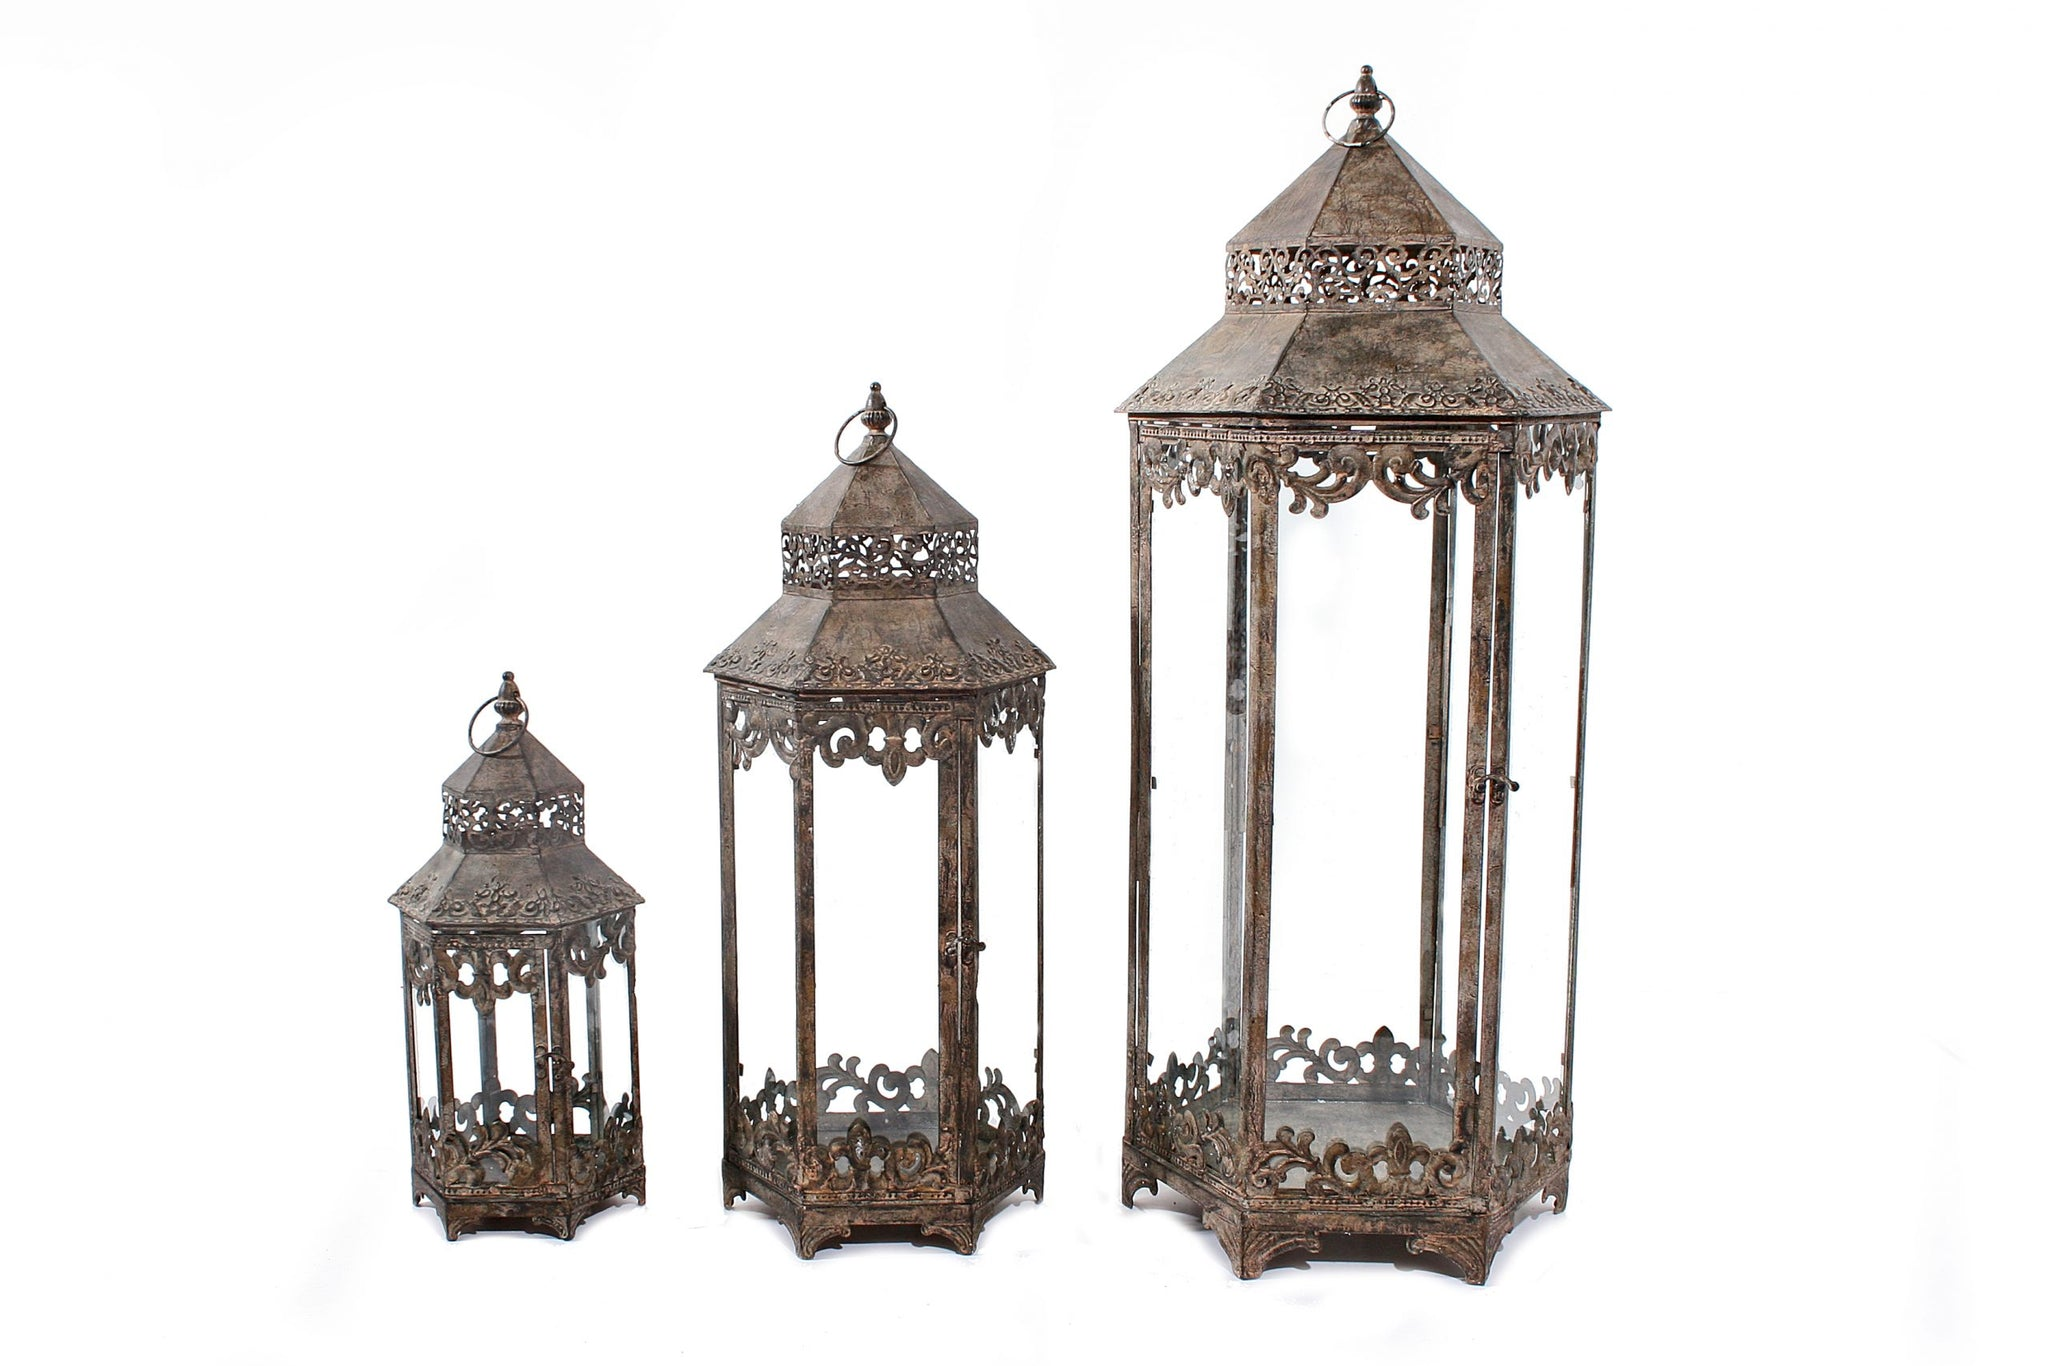 Set of 3 Siena Lanterns - NOT AVAILABLE FOR POSTAGE